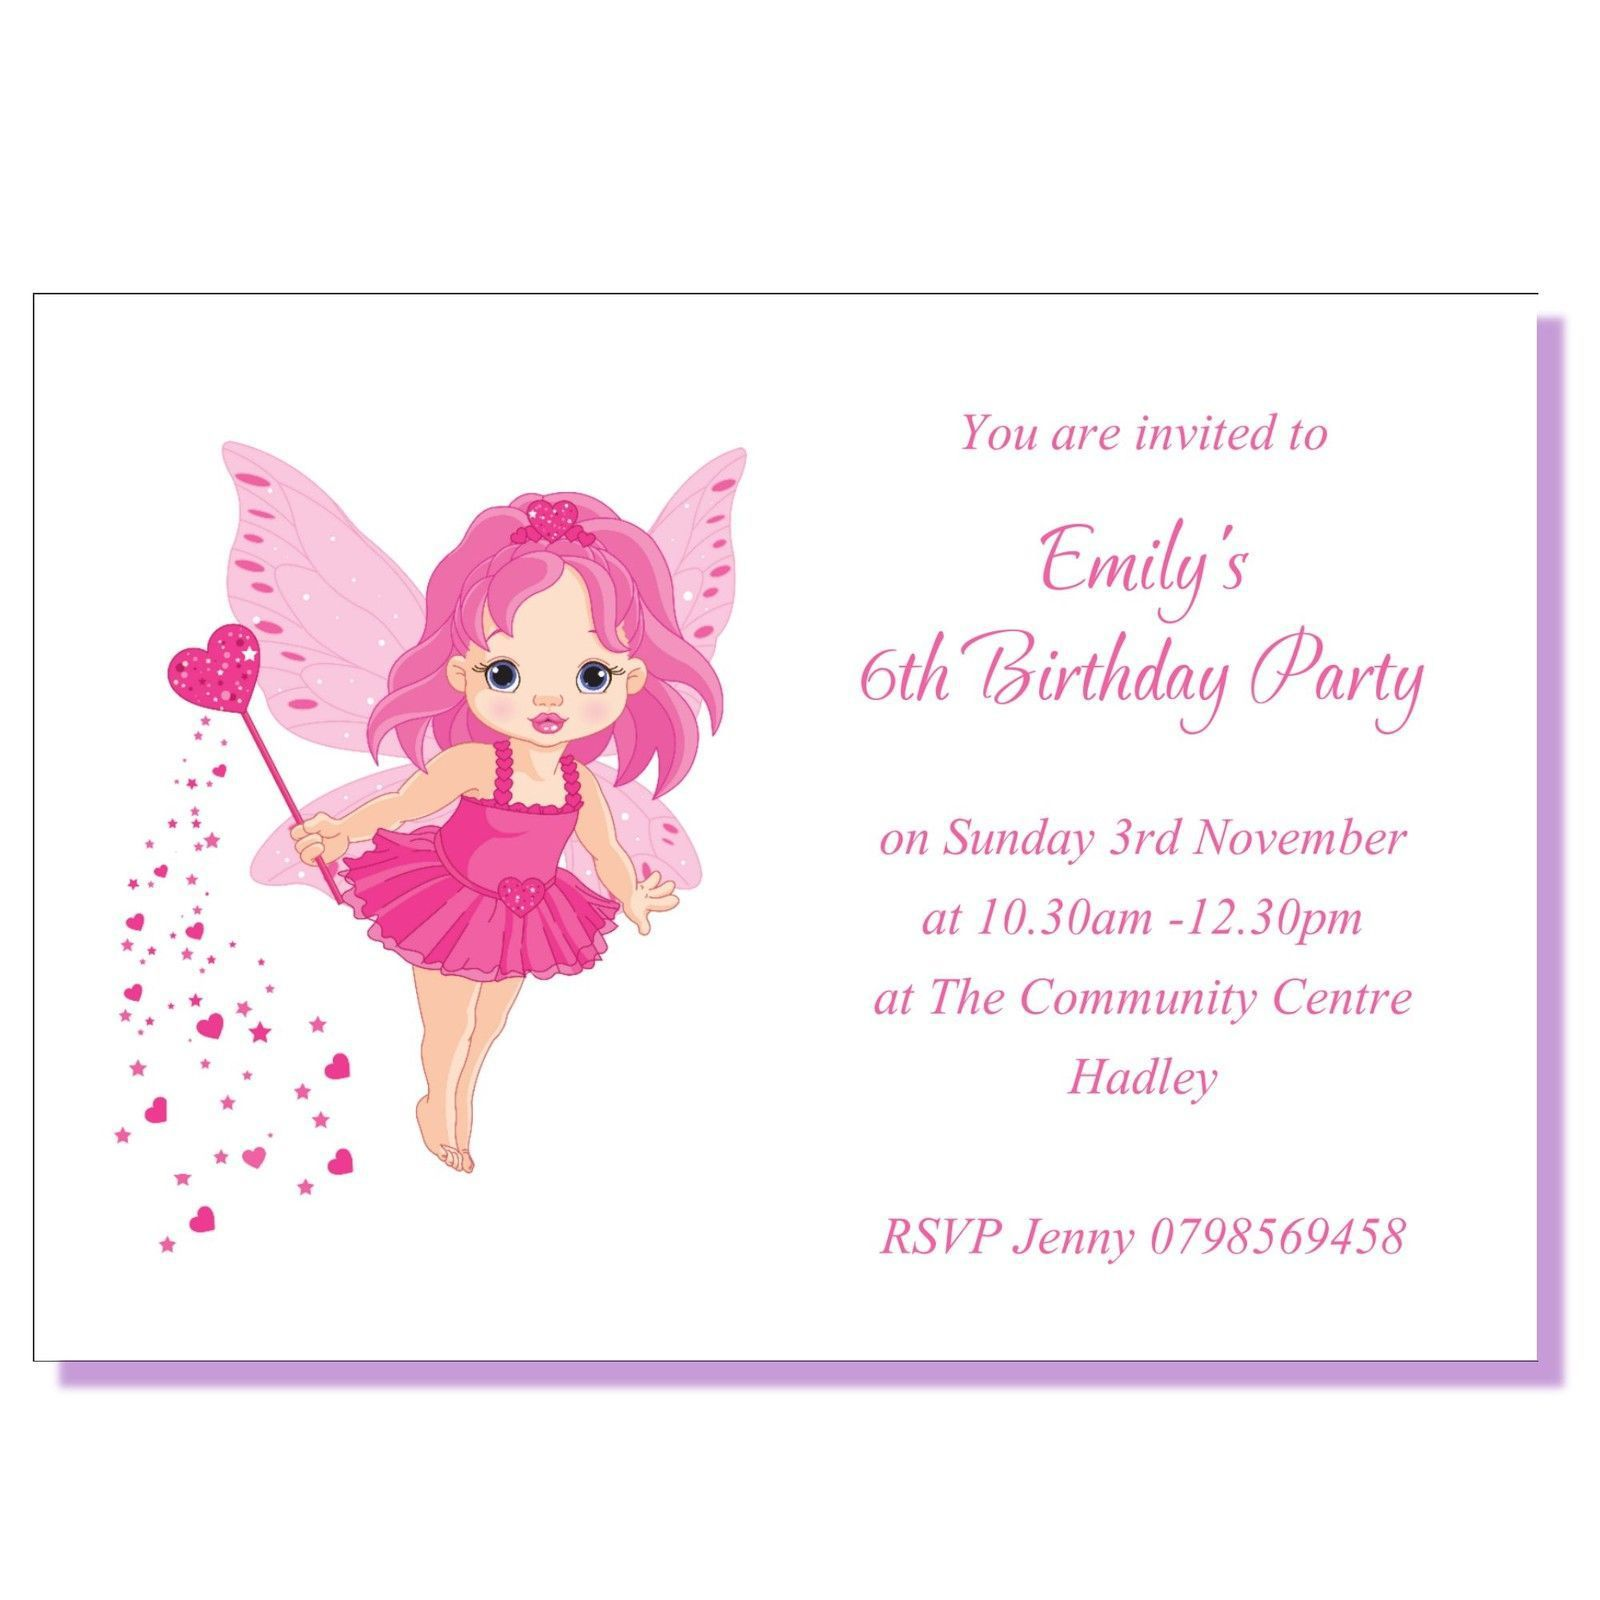 8th birthday invitation ; 8th-birthday-invitation-templates-8th-birthday-invitation-templates-and-get-ideas-how-to-make-graceful-birthday-invitation-appearance-8